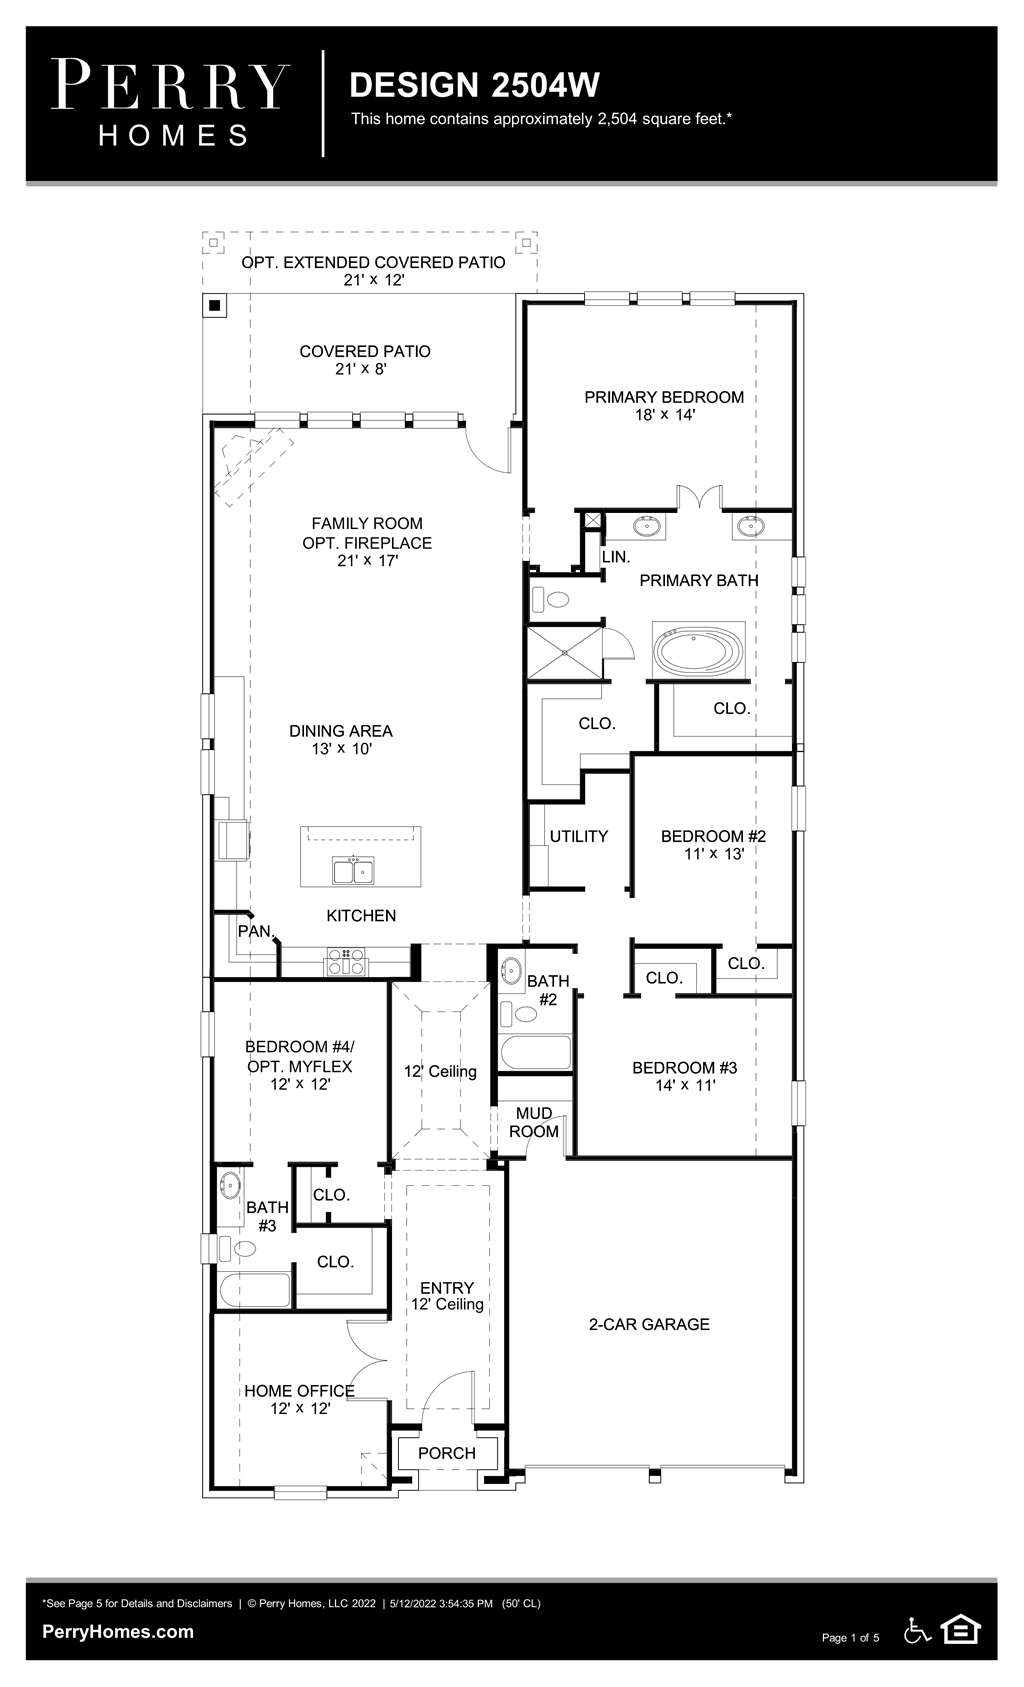 Floor Plan for 2504W